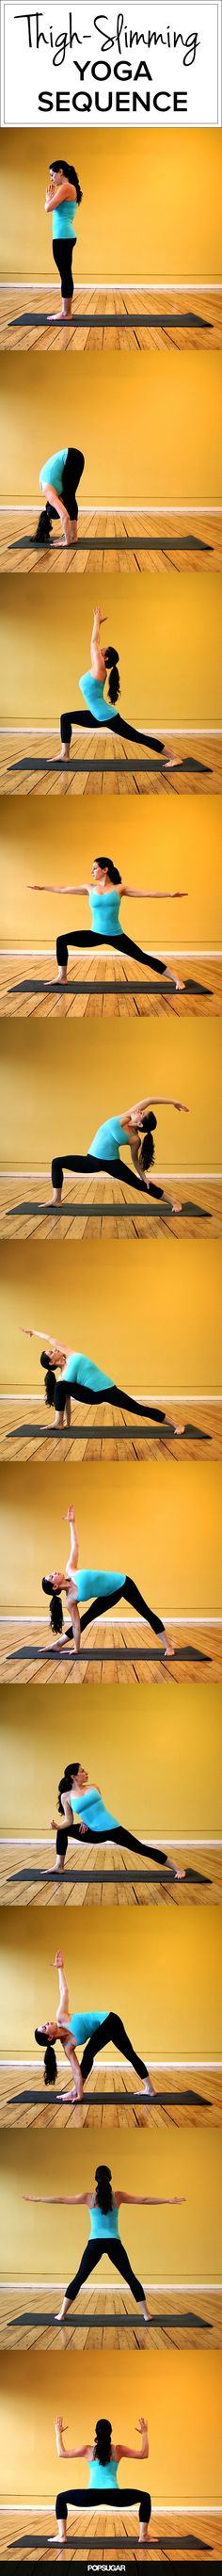 Thigh-Slimming Yoga Sequence to Show Off Those Summer Skirts